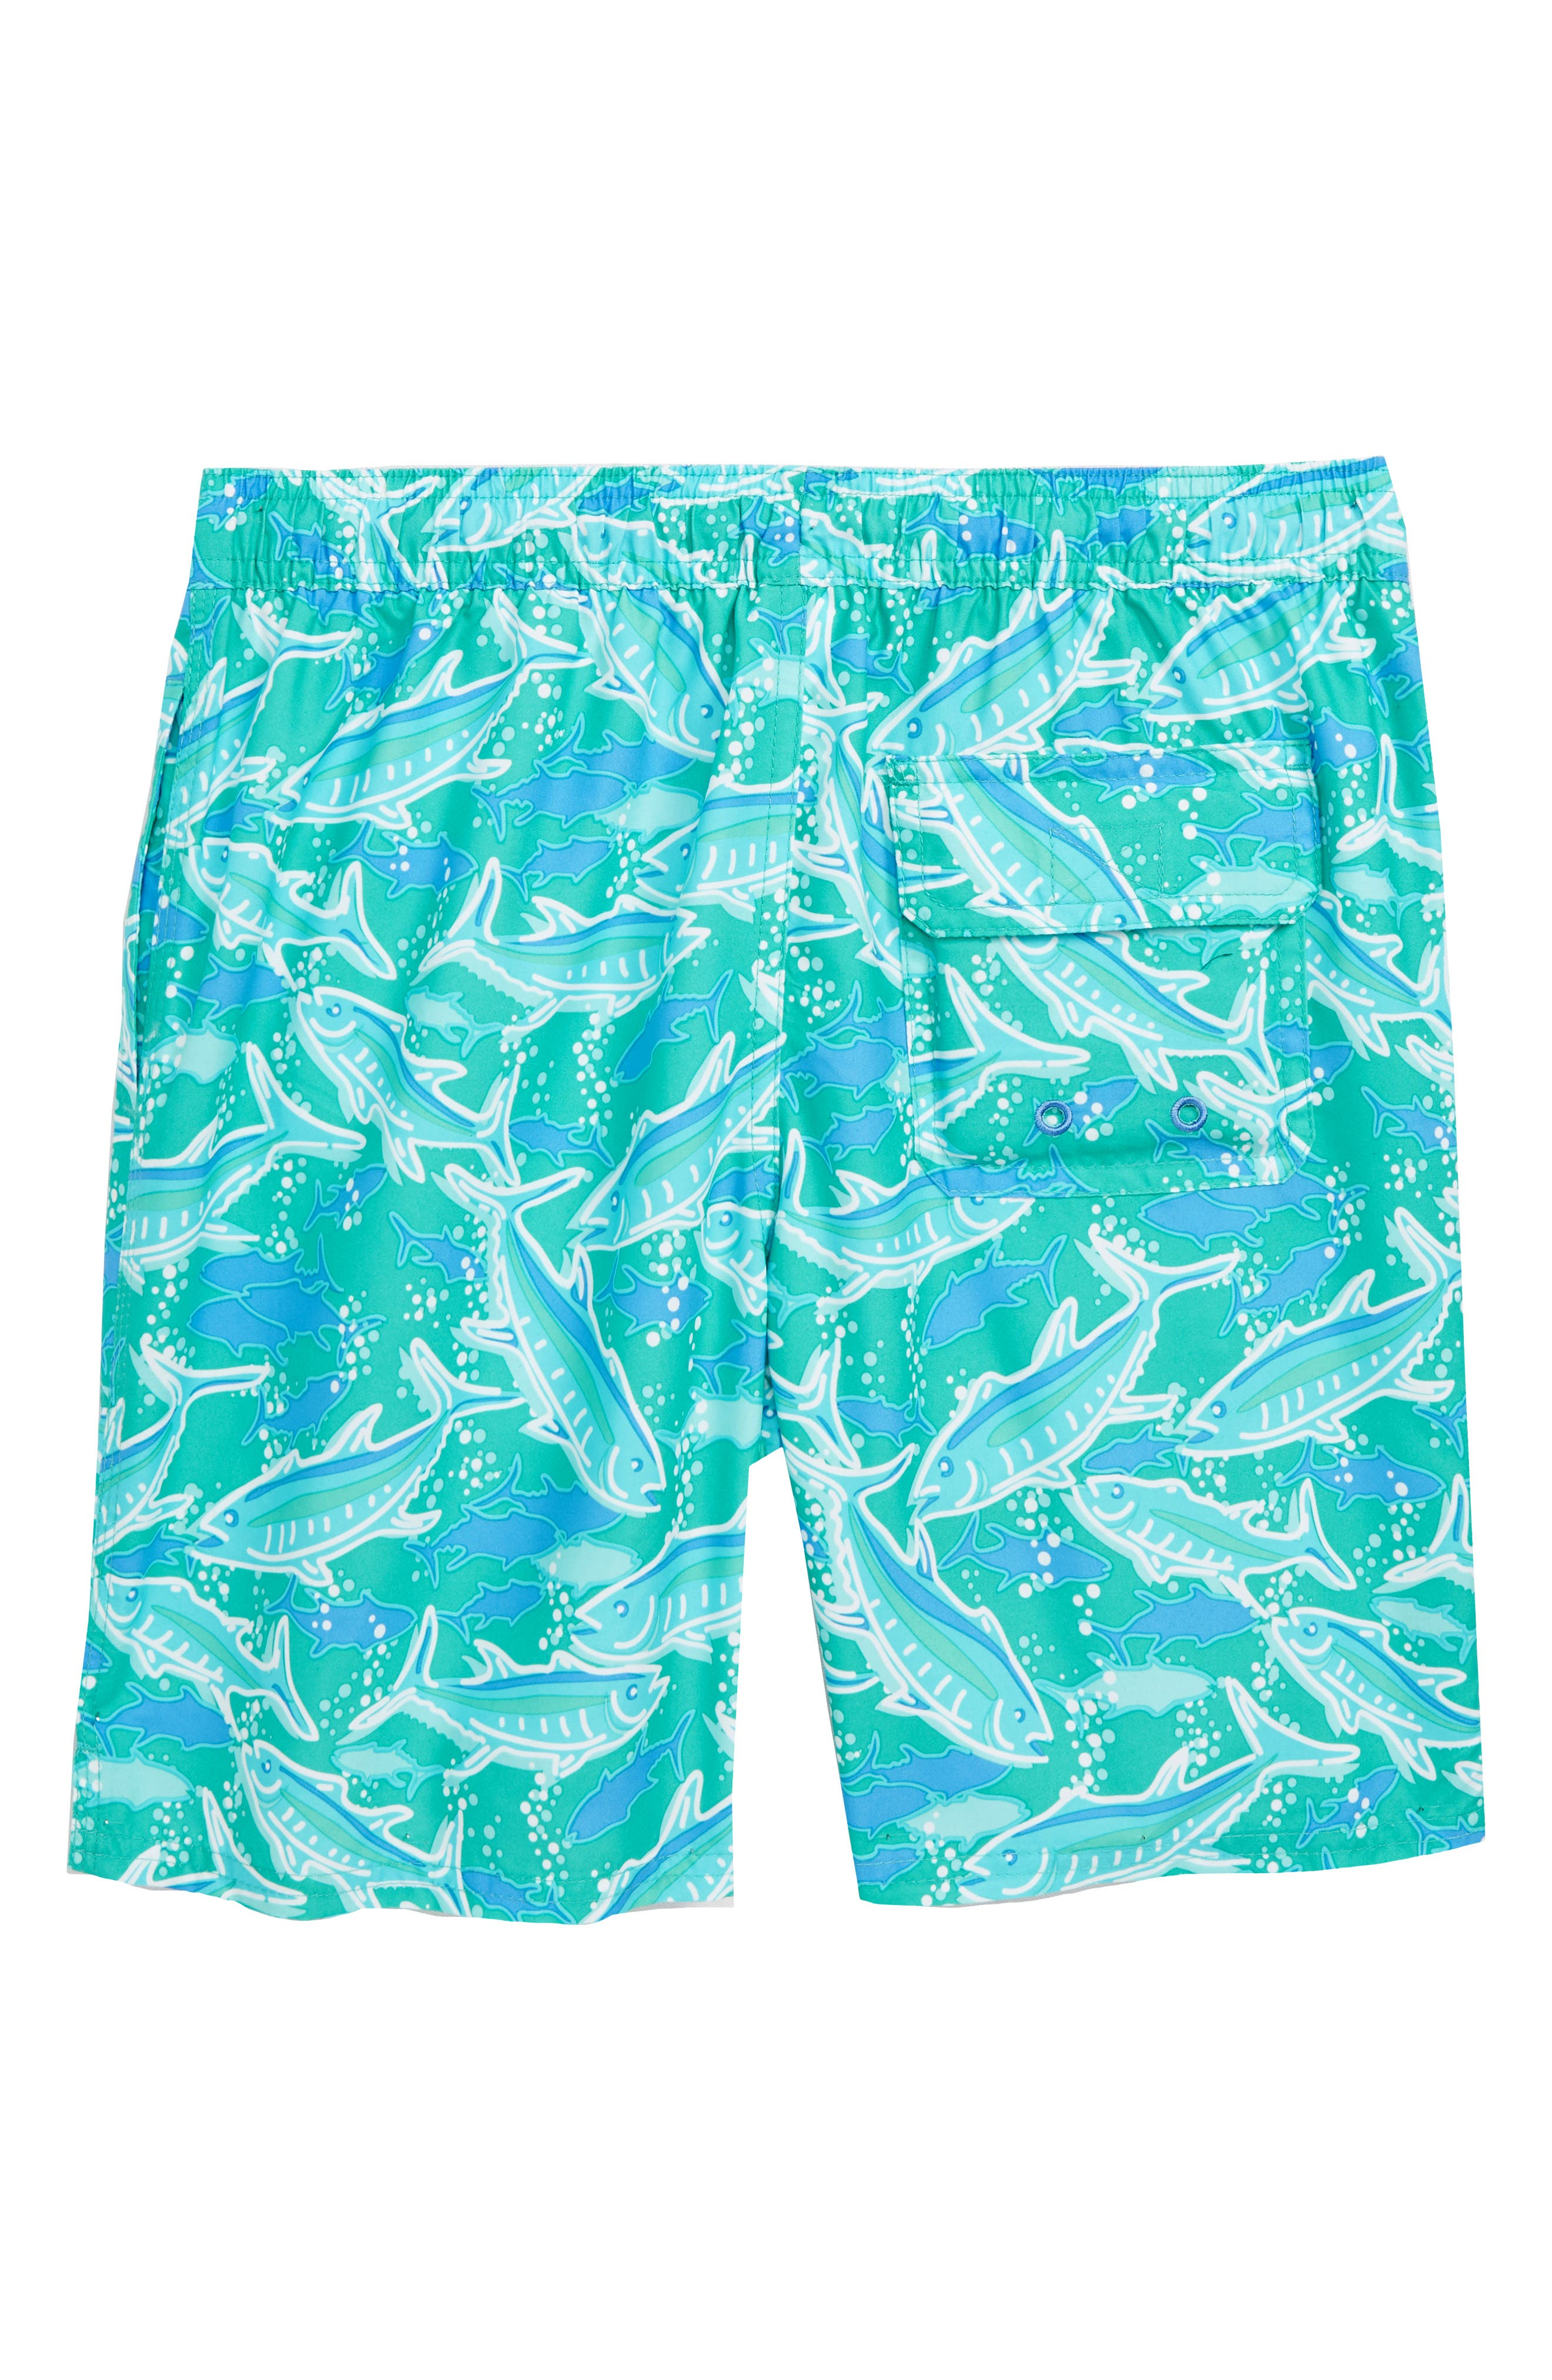 Chappy School of Tuna Swim Trunks,                             Alternate thumbnail 2, color,                             440